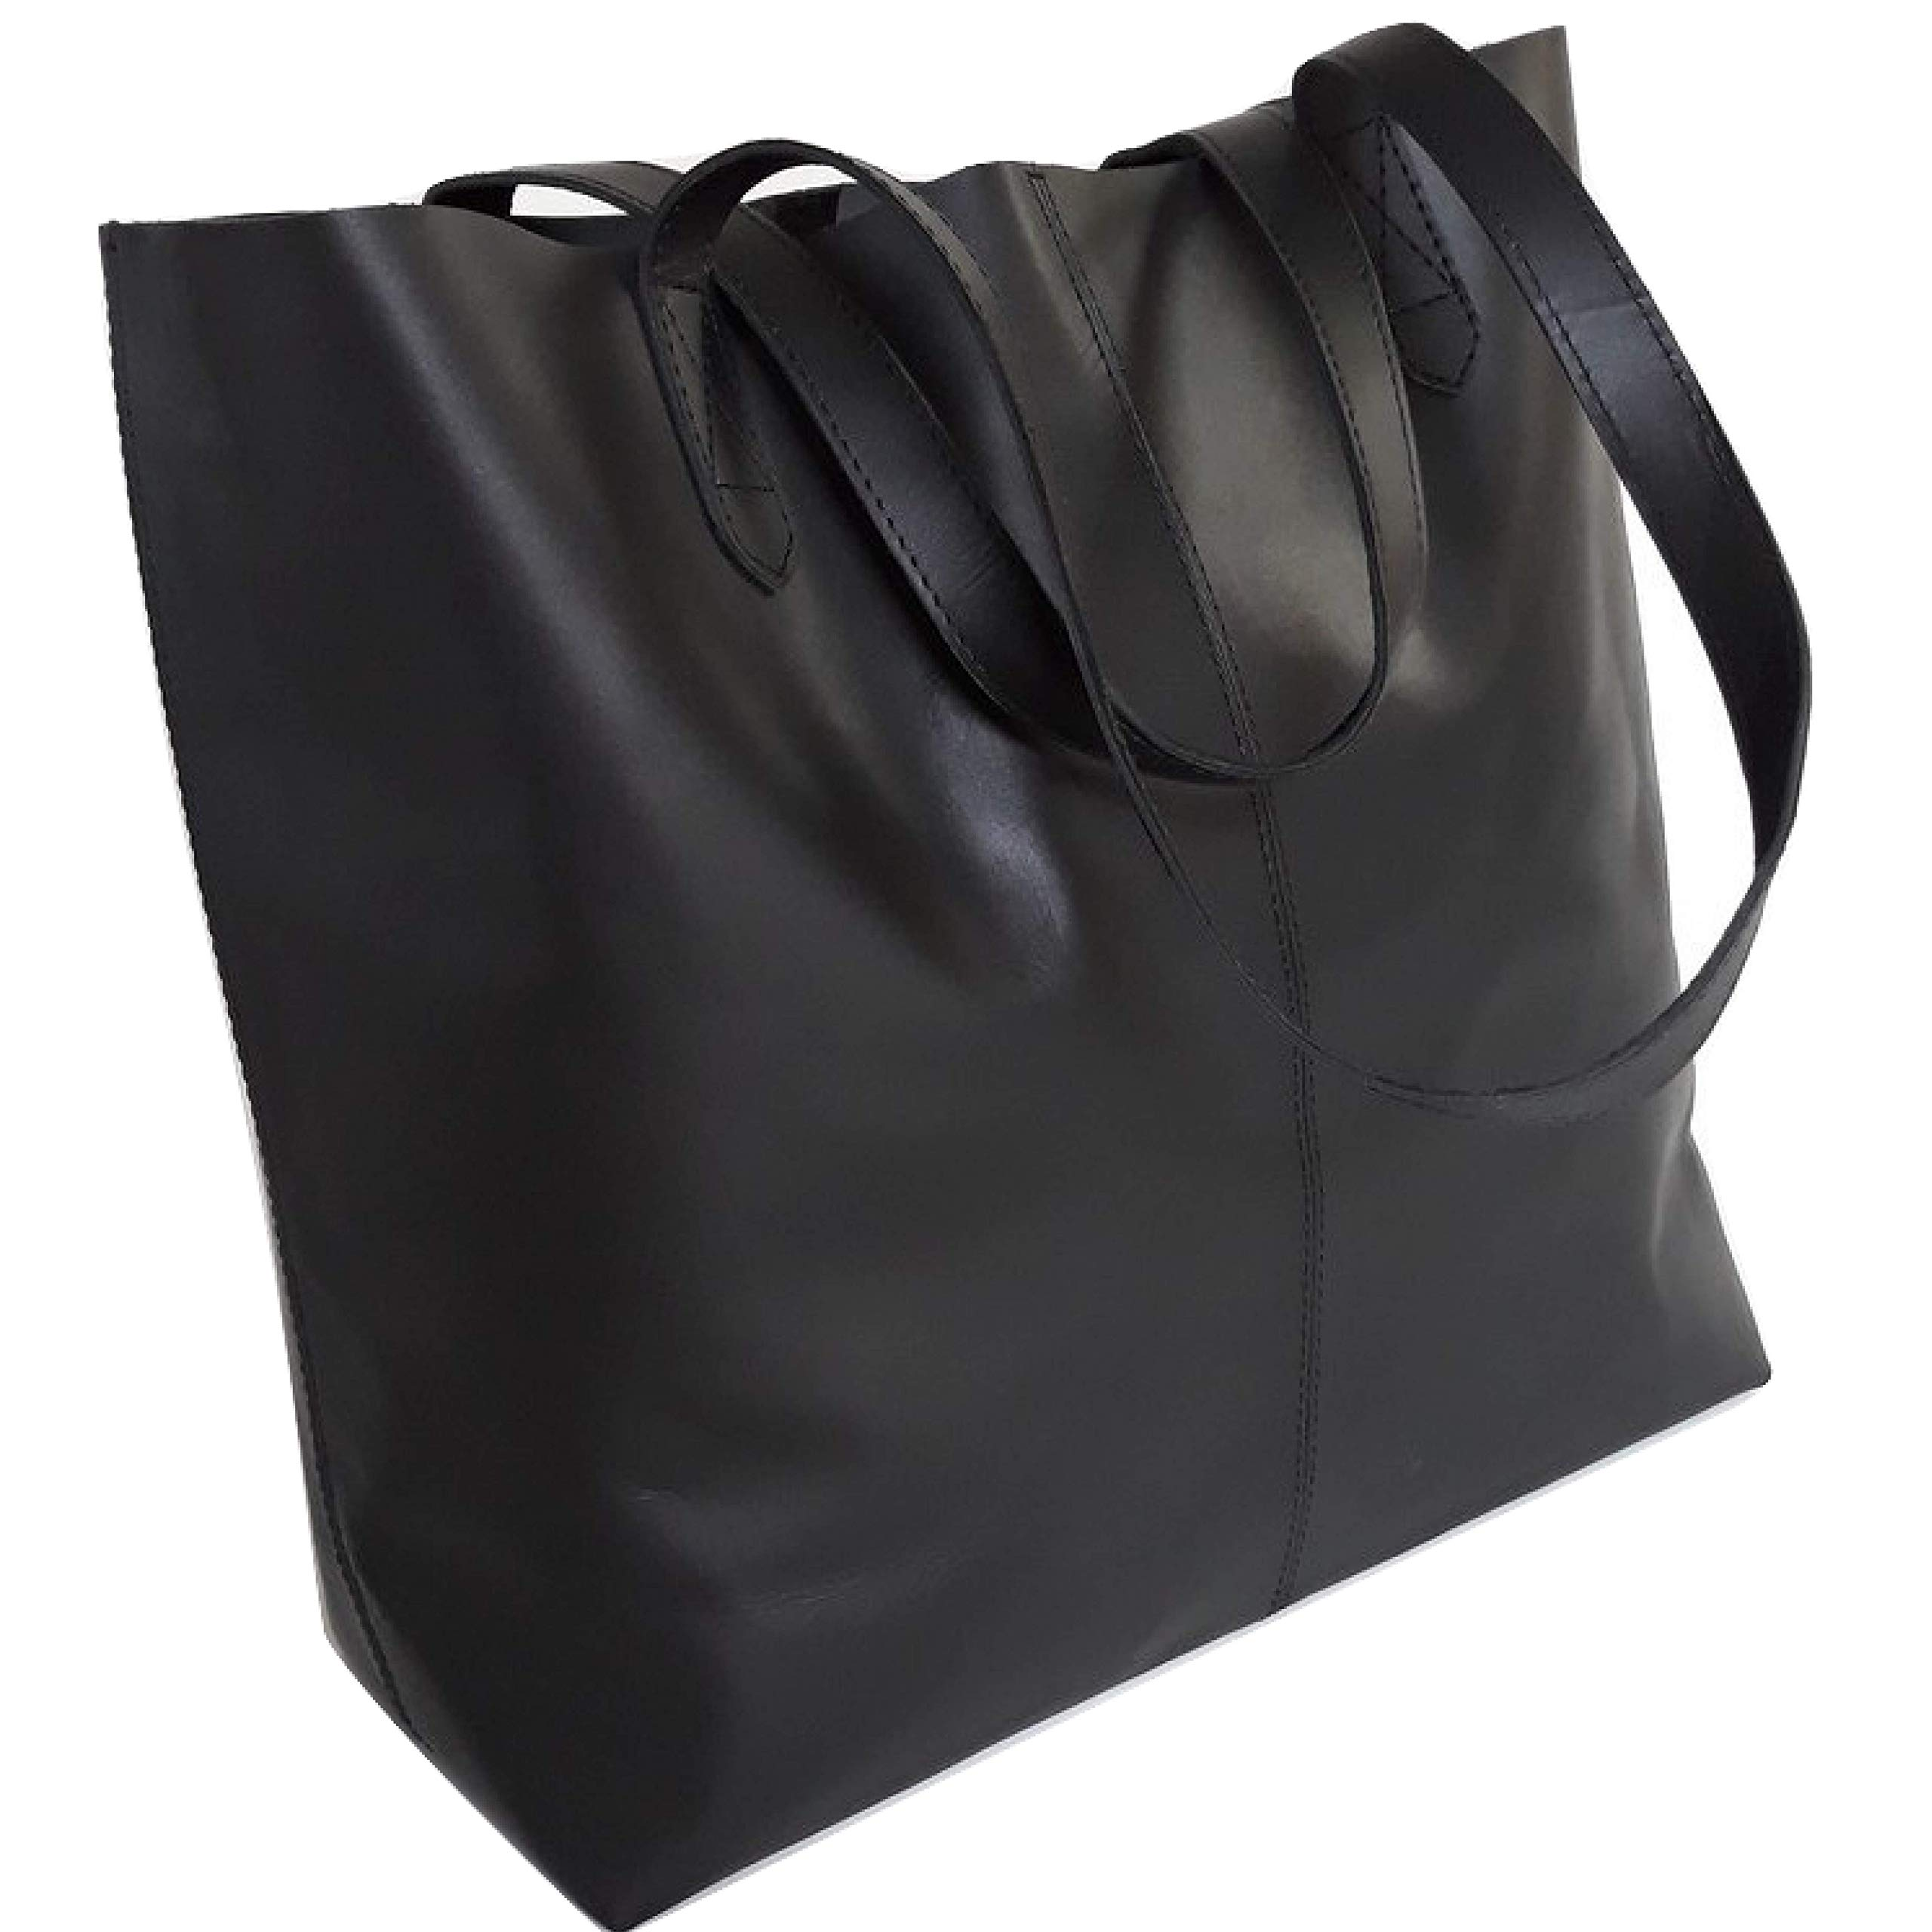 Genuine Leather Tote Bag, Large Everyday Shoulder Bag for Work, Shopping, Gym or Travel (Black with Stitching)